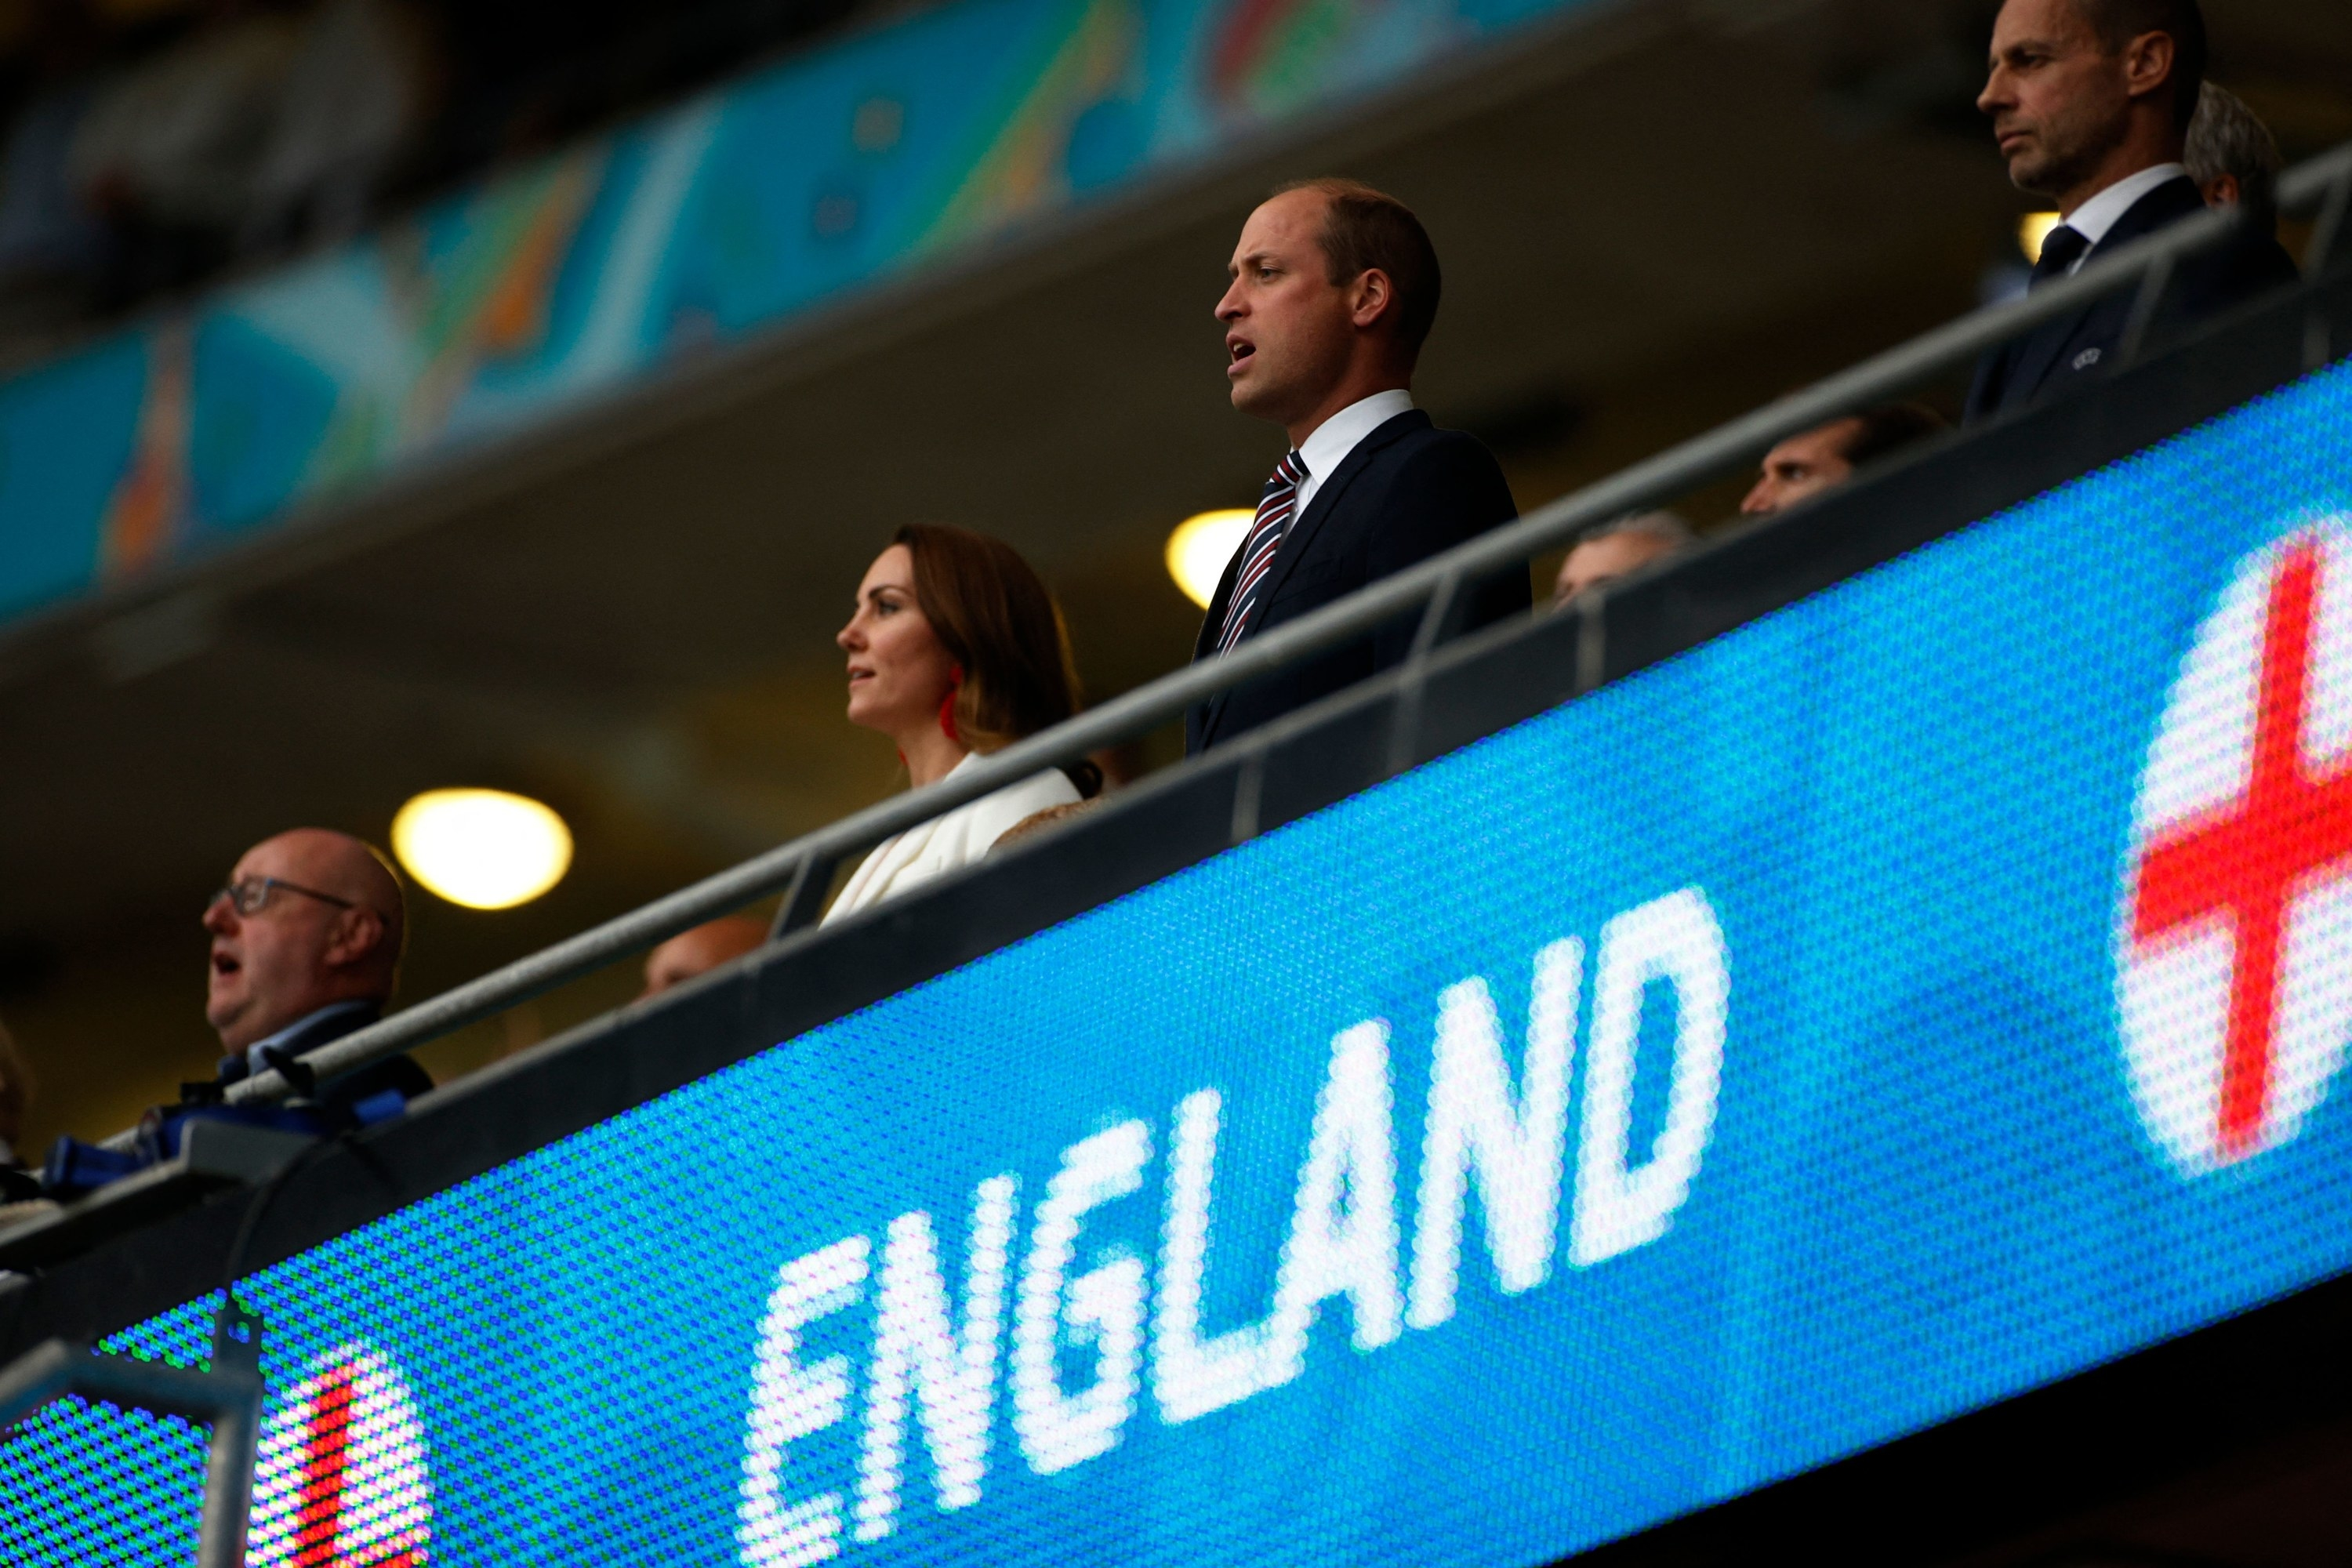 """Kate and William in the stands below an """"England"""" sign"""